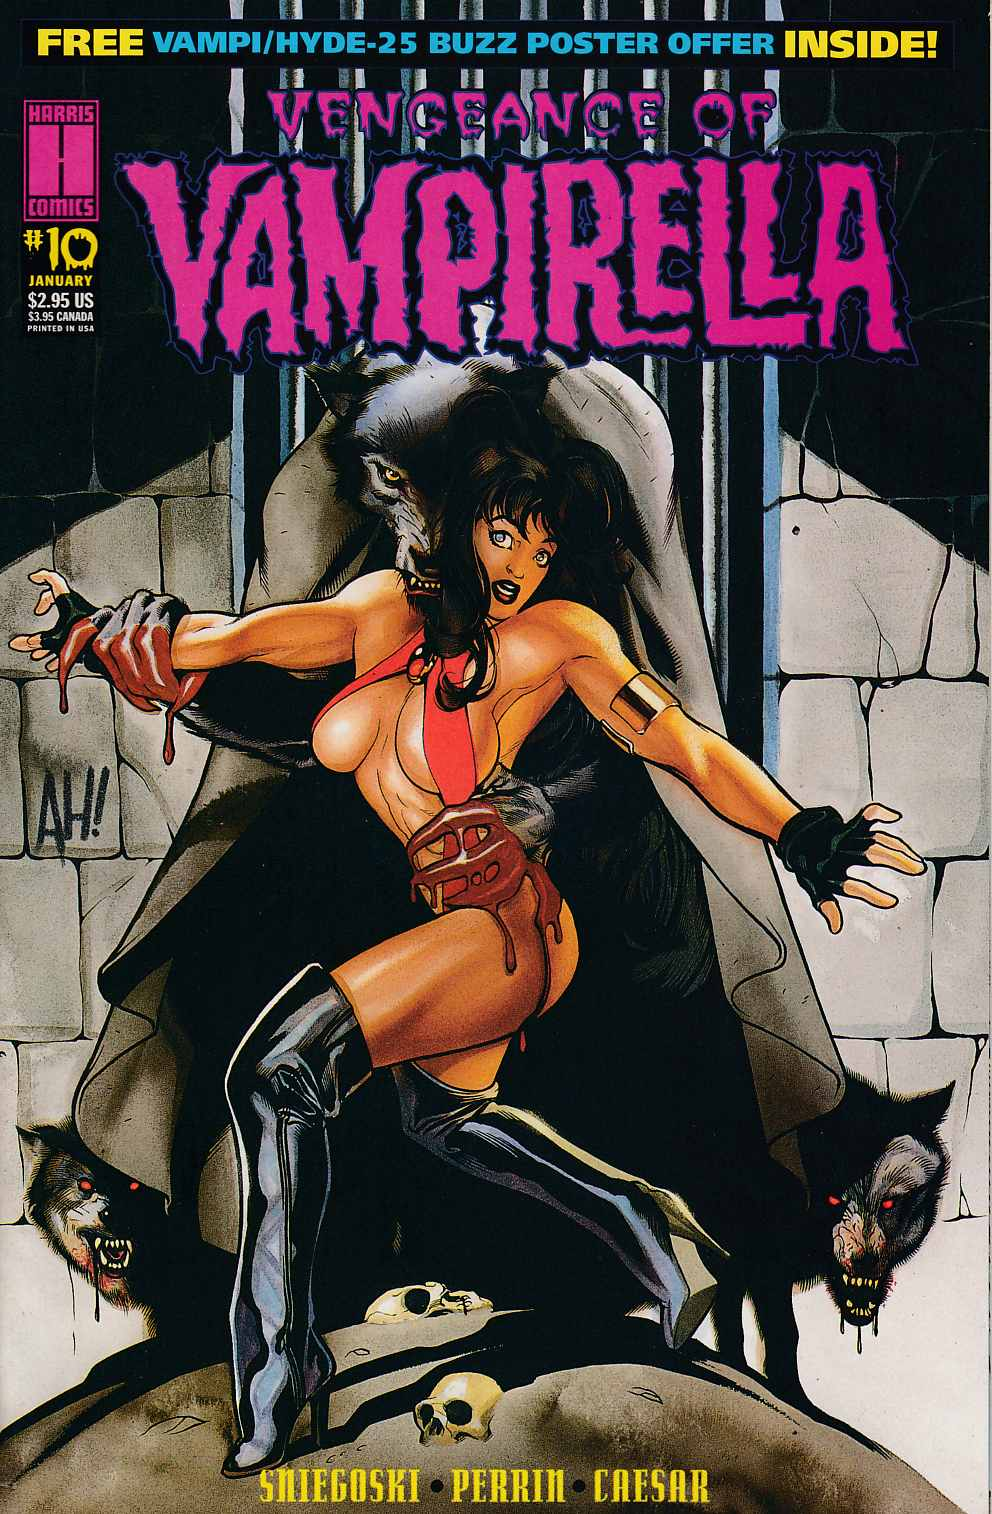 Vengeance of Vampirella #10 Very Fine (8.0) [Harris Comic] THUMBNAIL